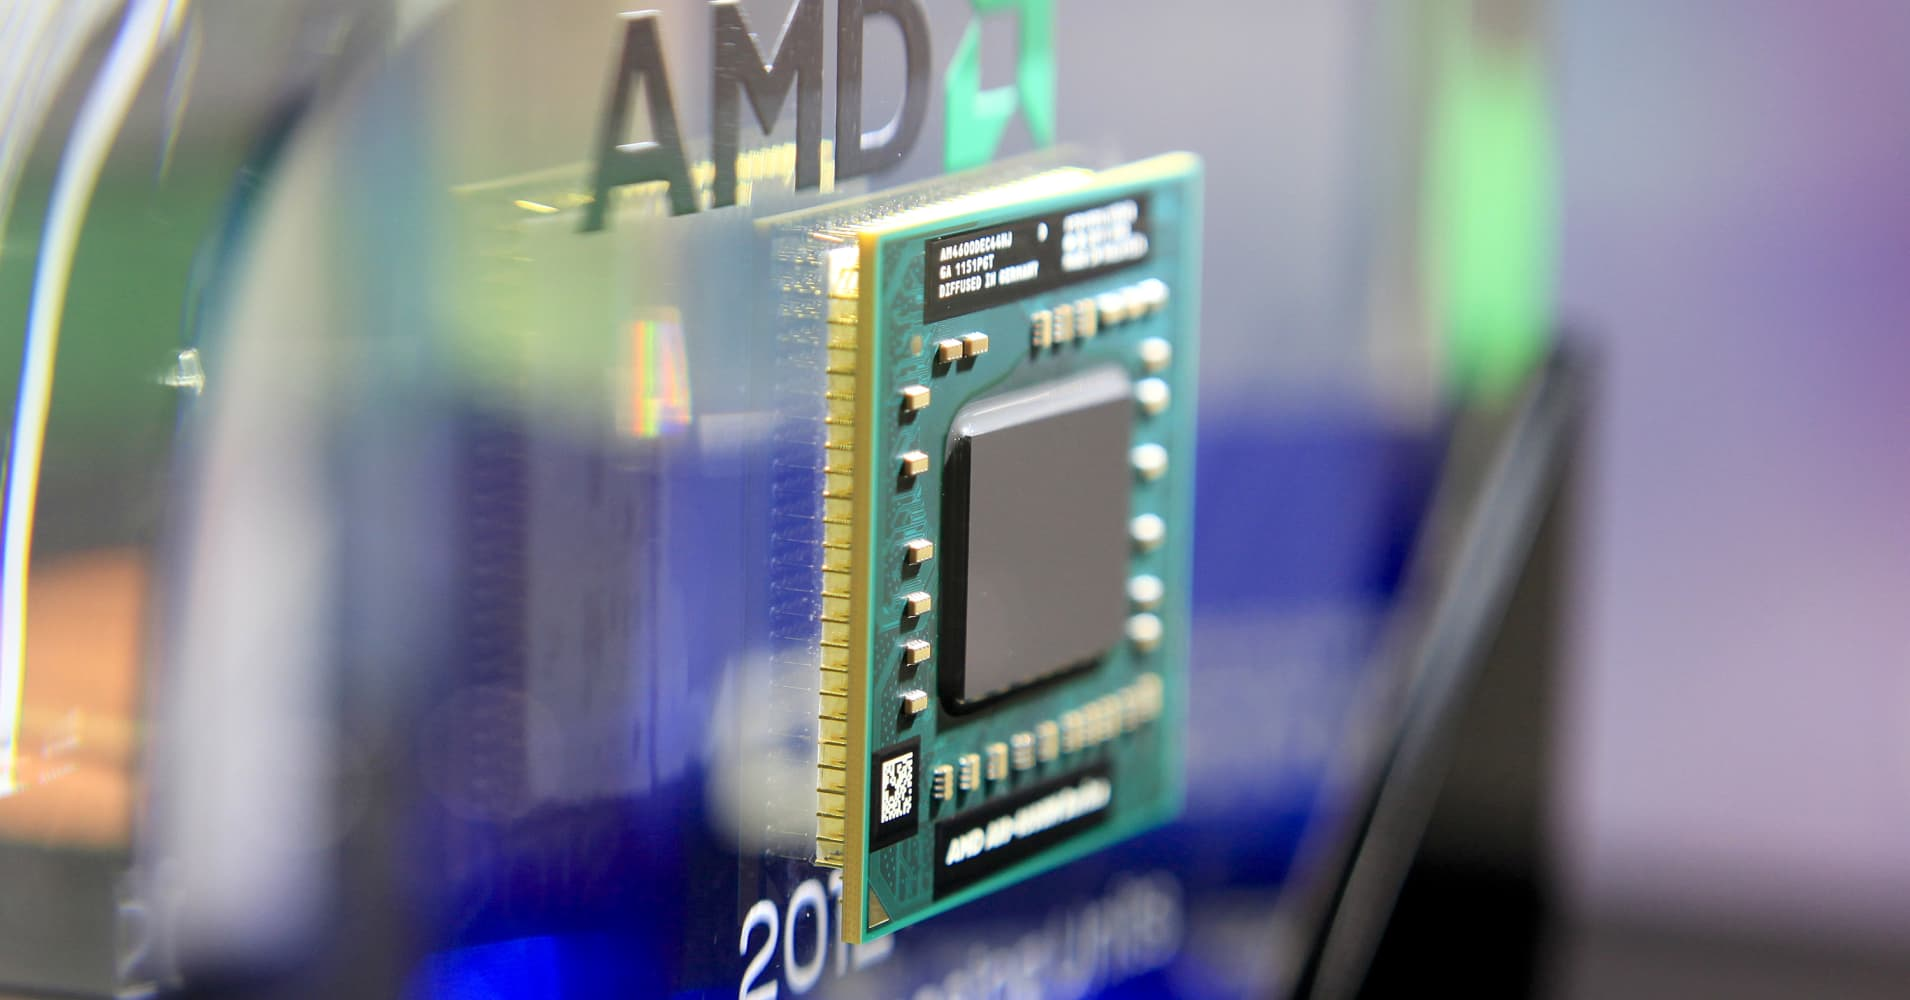 The big rumor that caused traders to boost hot stock AMD this week turns out to be untrue